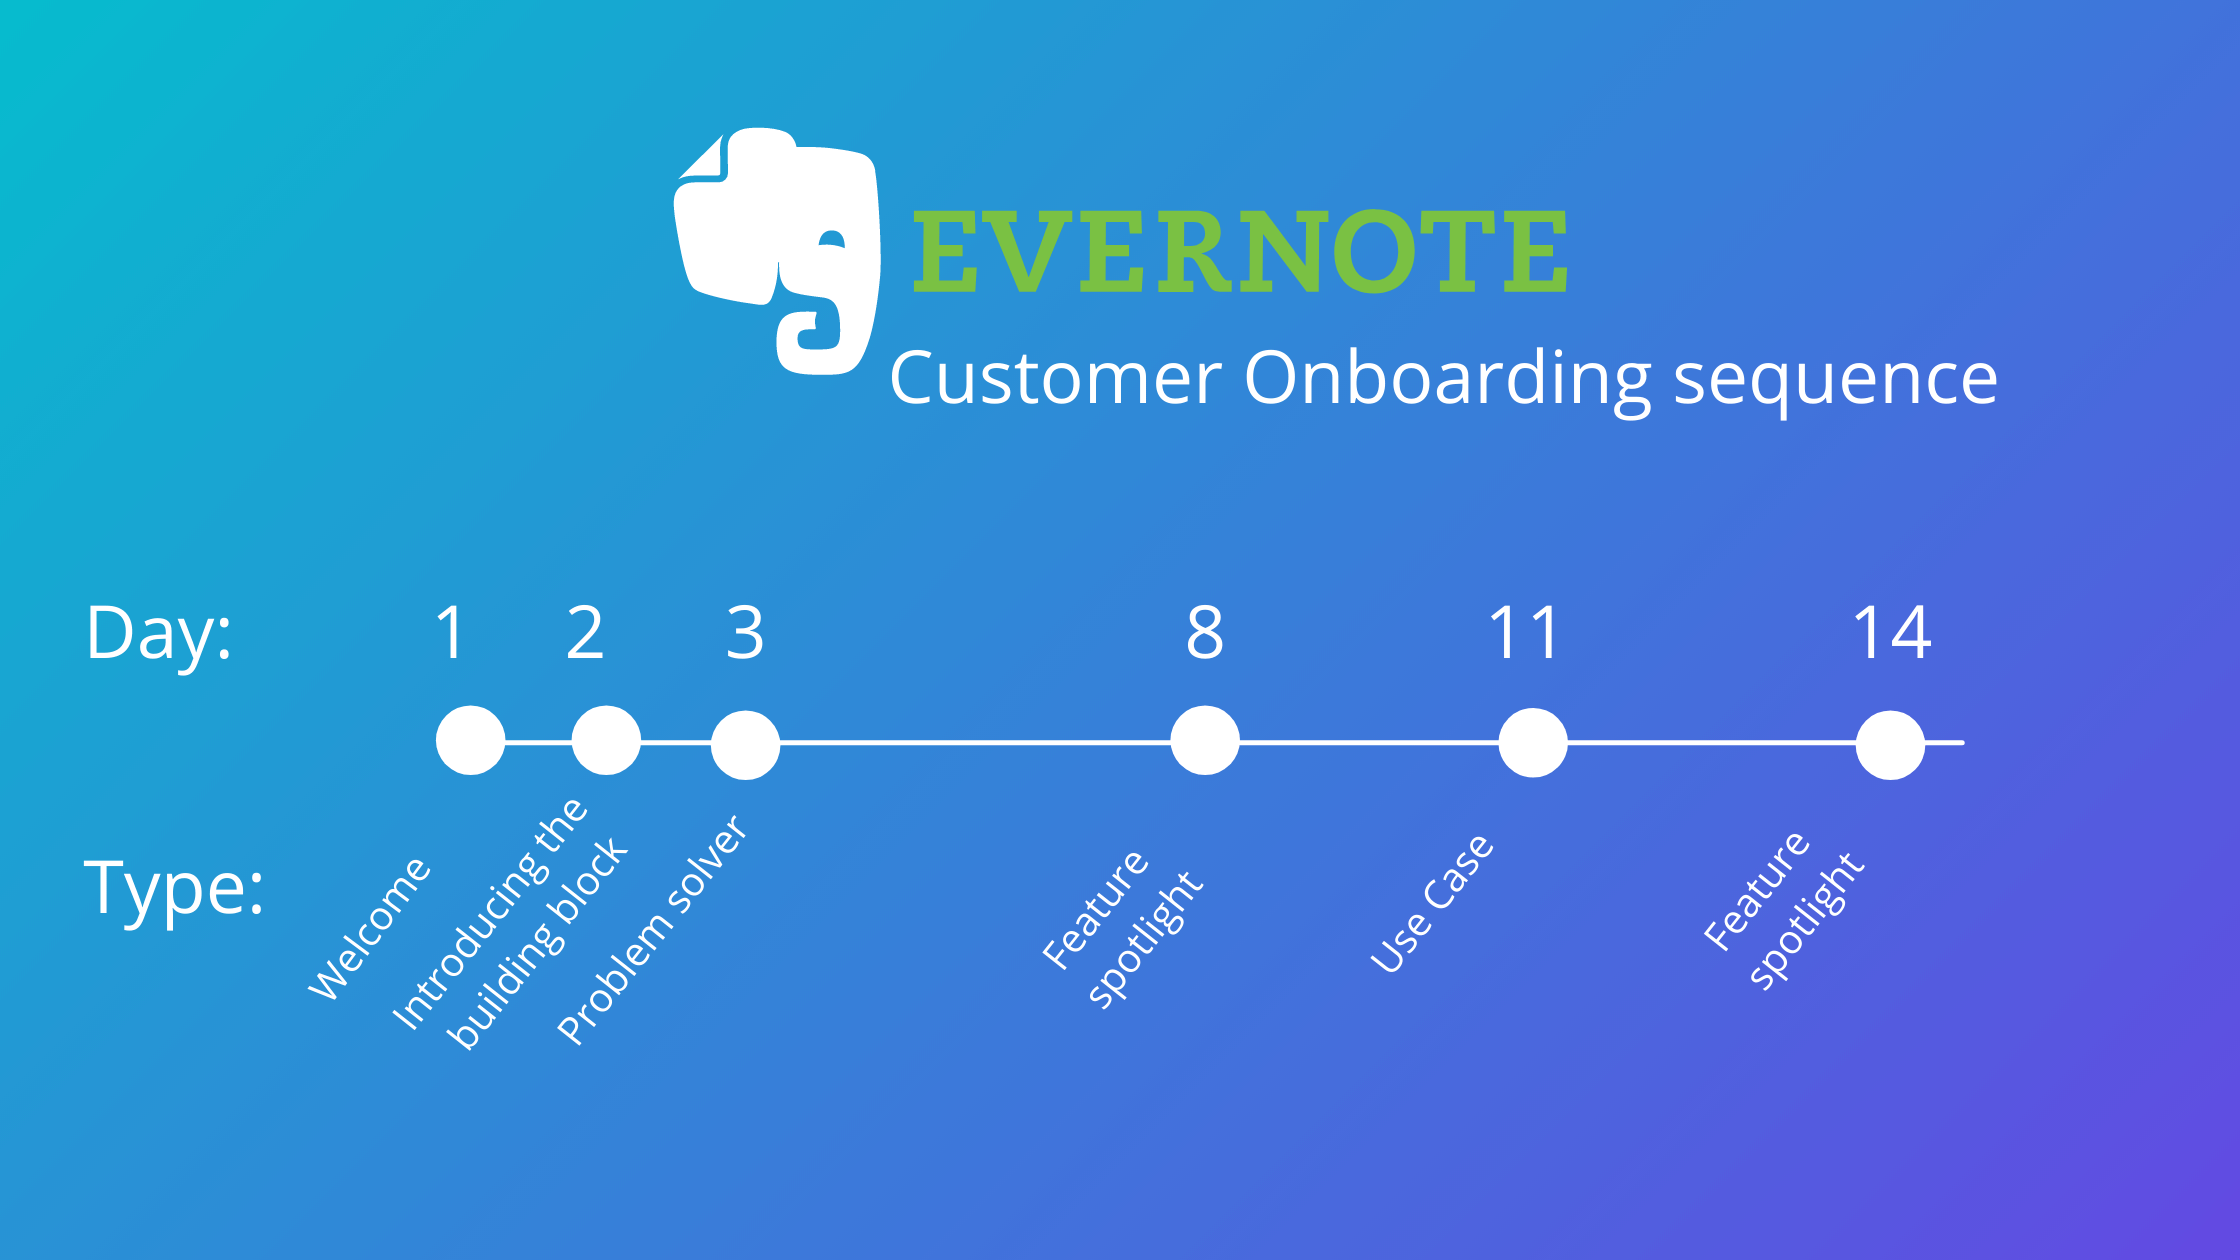 Evernote customer onboarding sequence